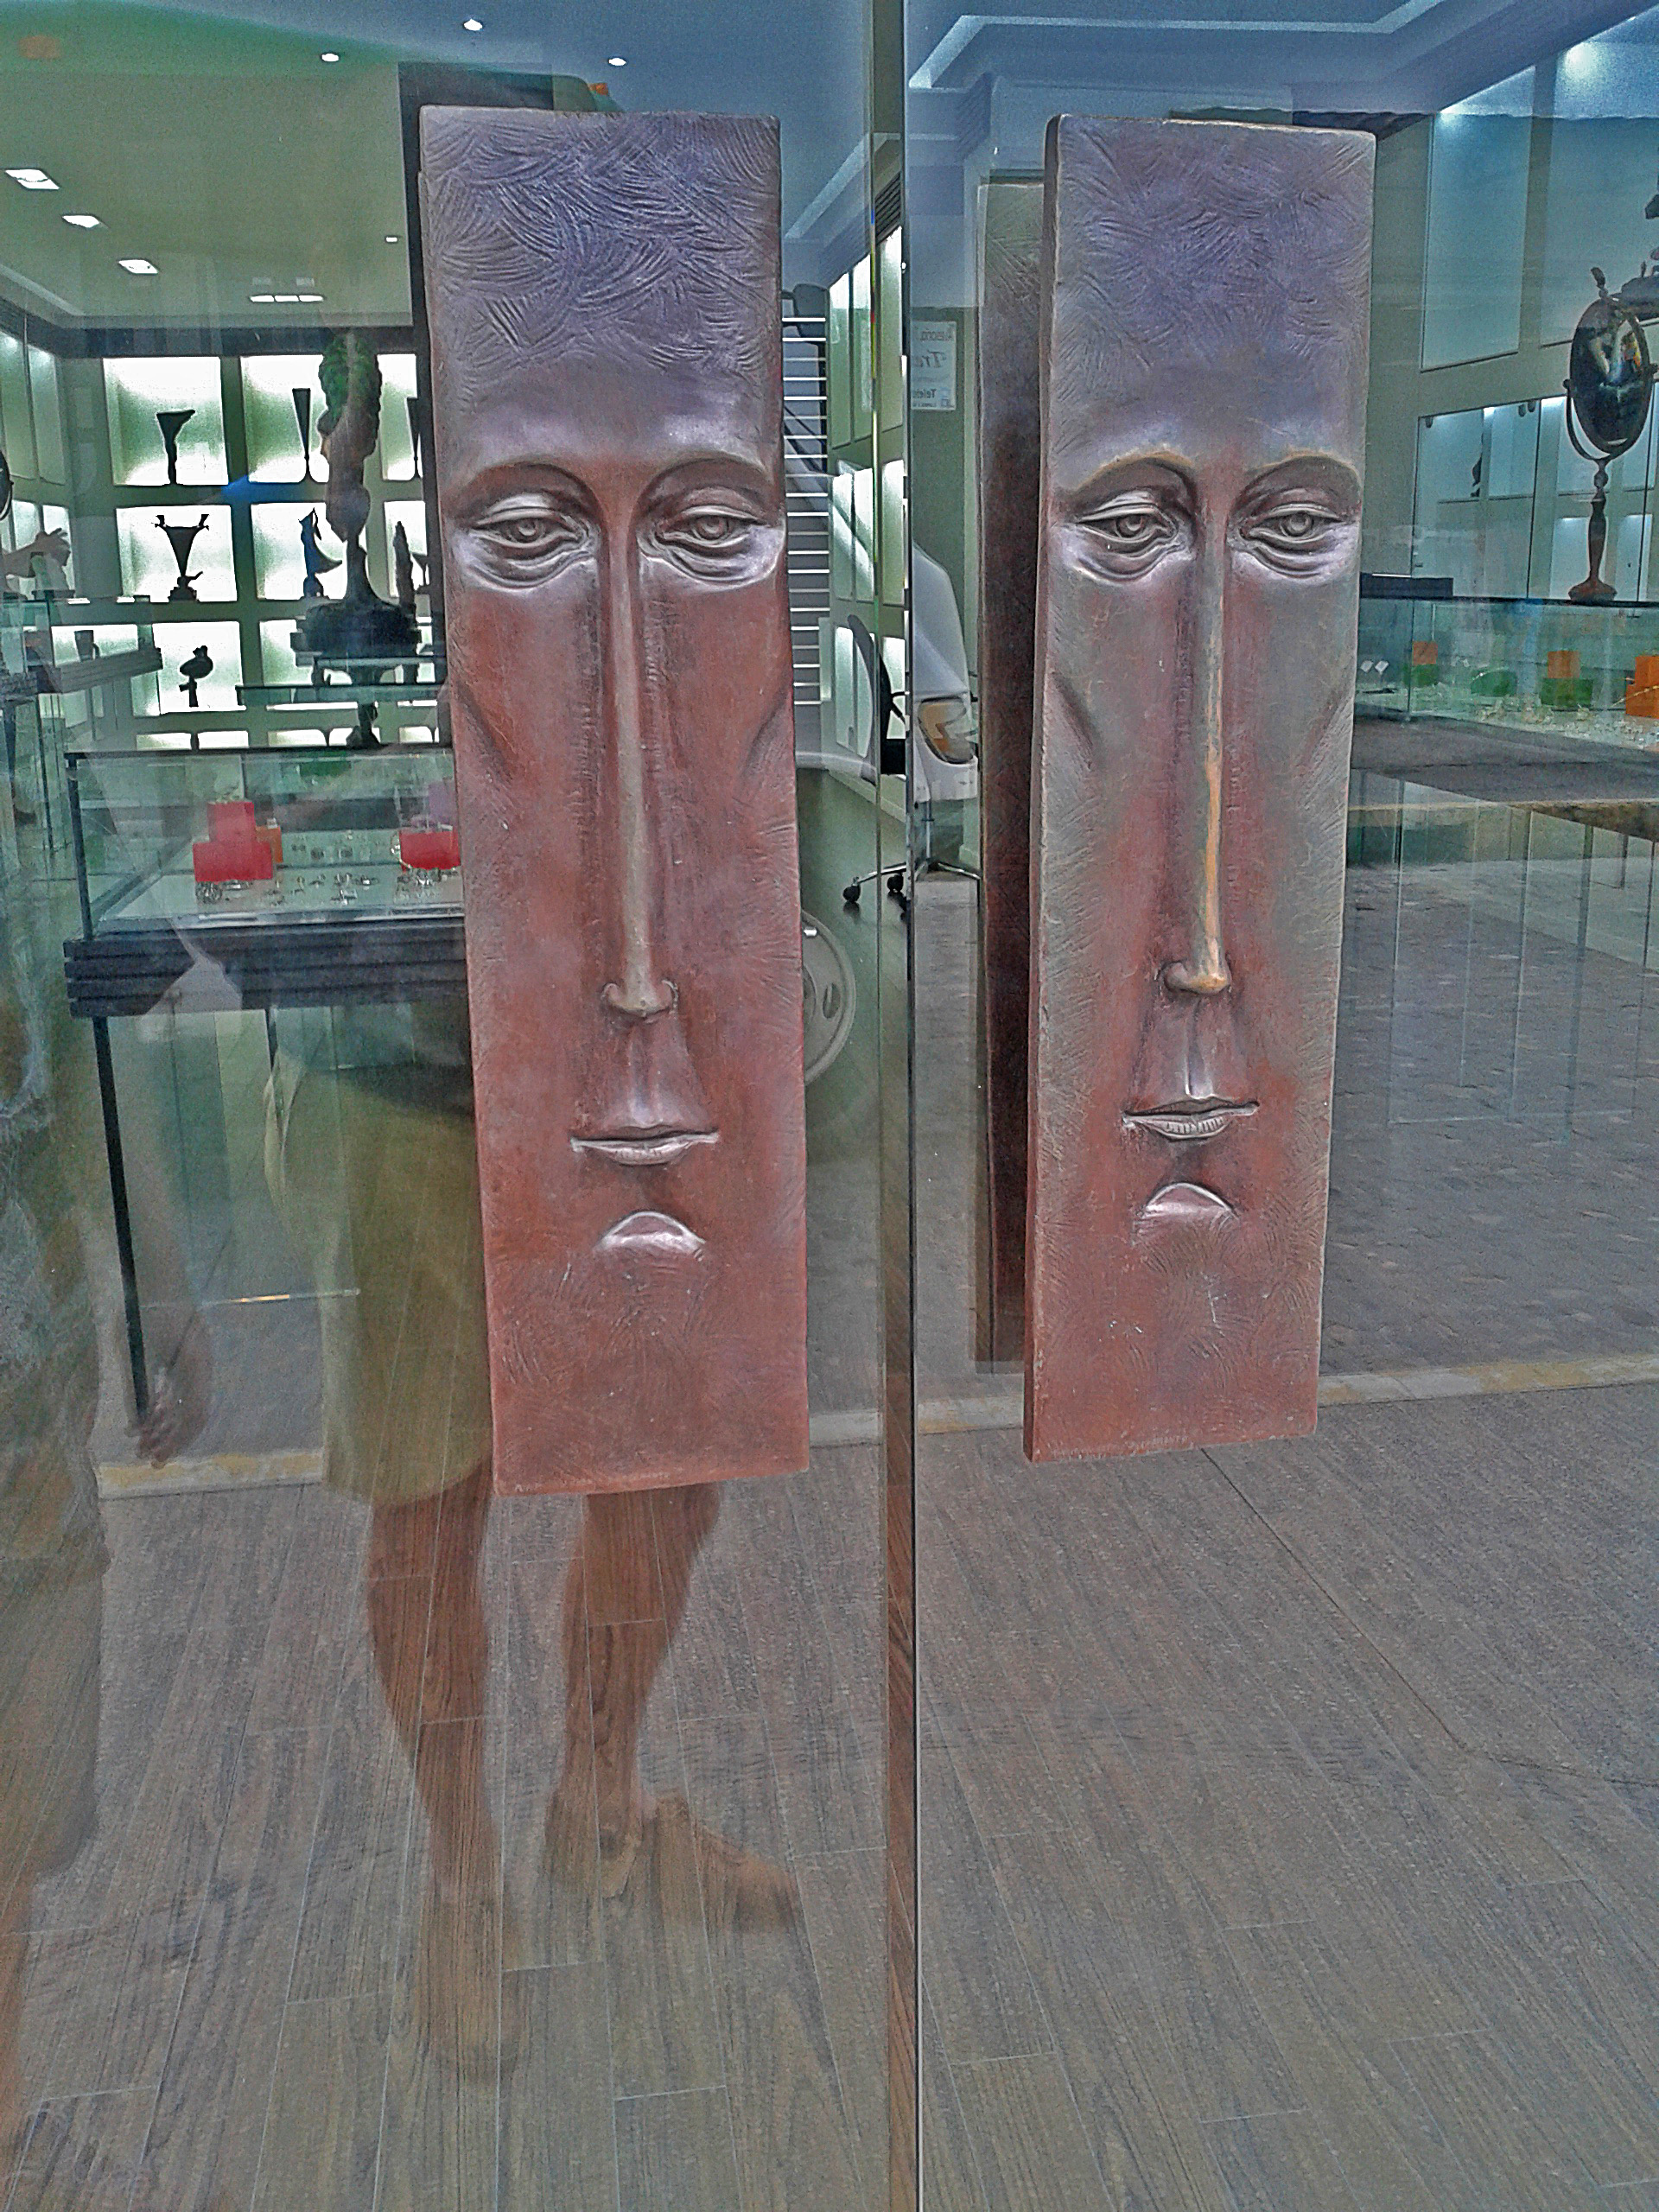 Door handles for Bustamante's store